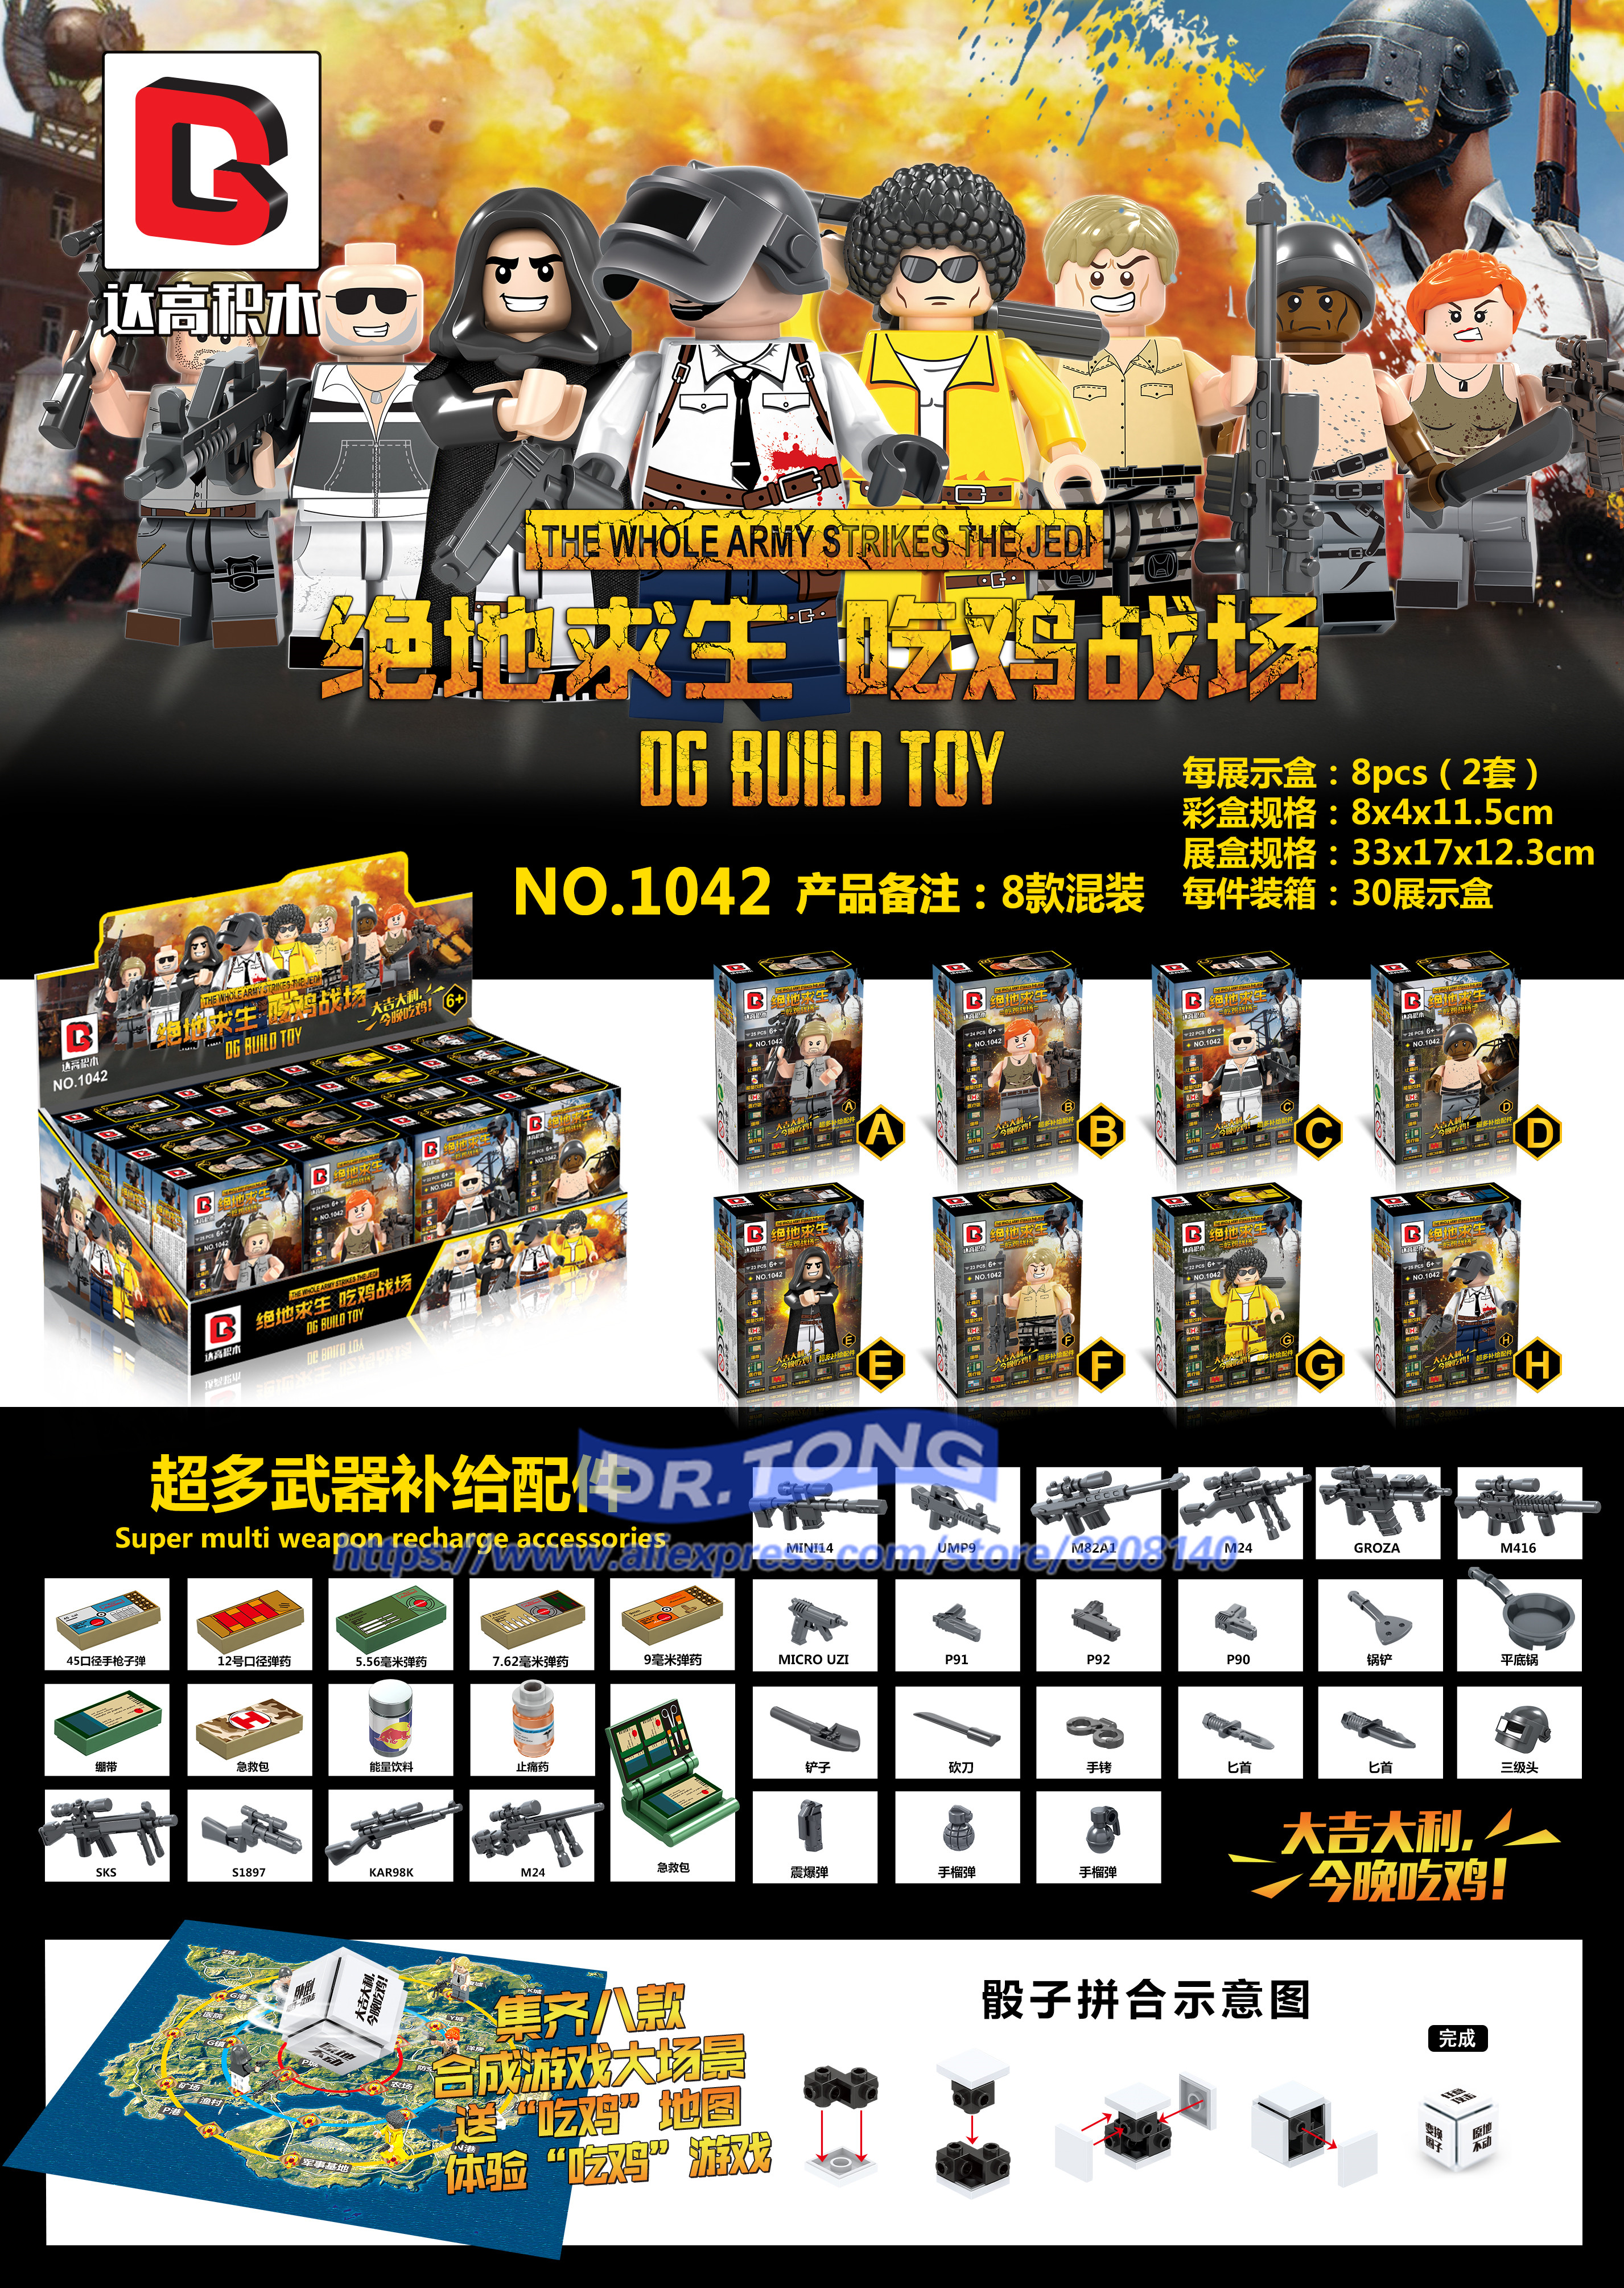 2018 NEW PUBG FPS Game MILITARY Figures Winner Winner Chicken Dinner Soldier Army Building Blocks Educational Toys GIFTS D1042